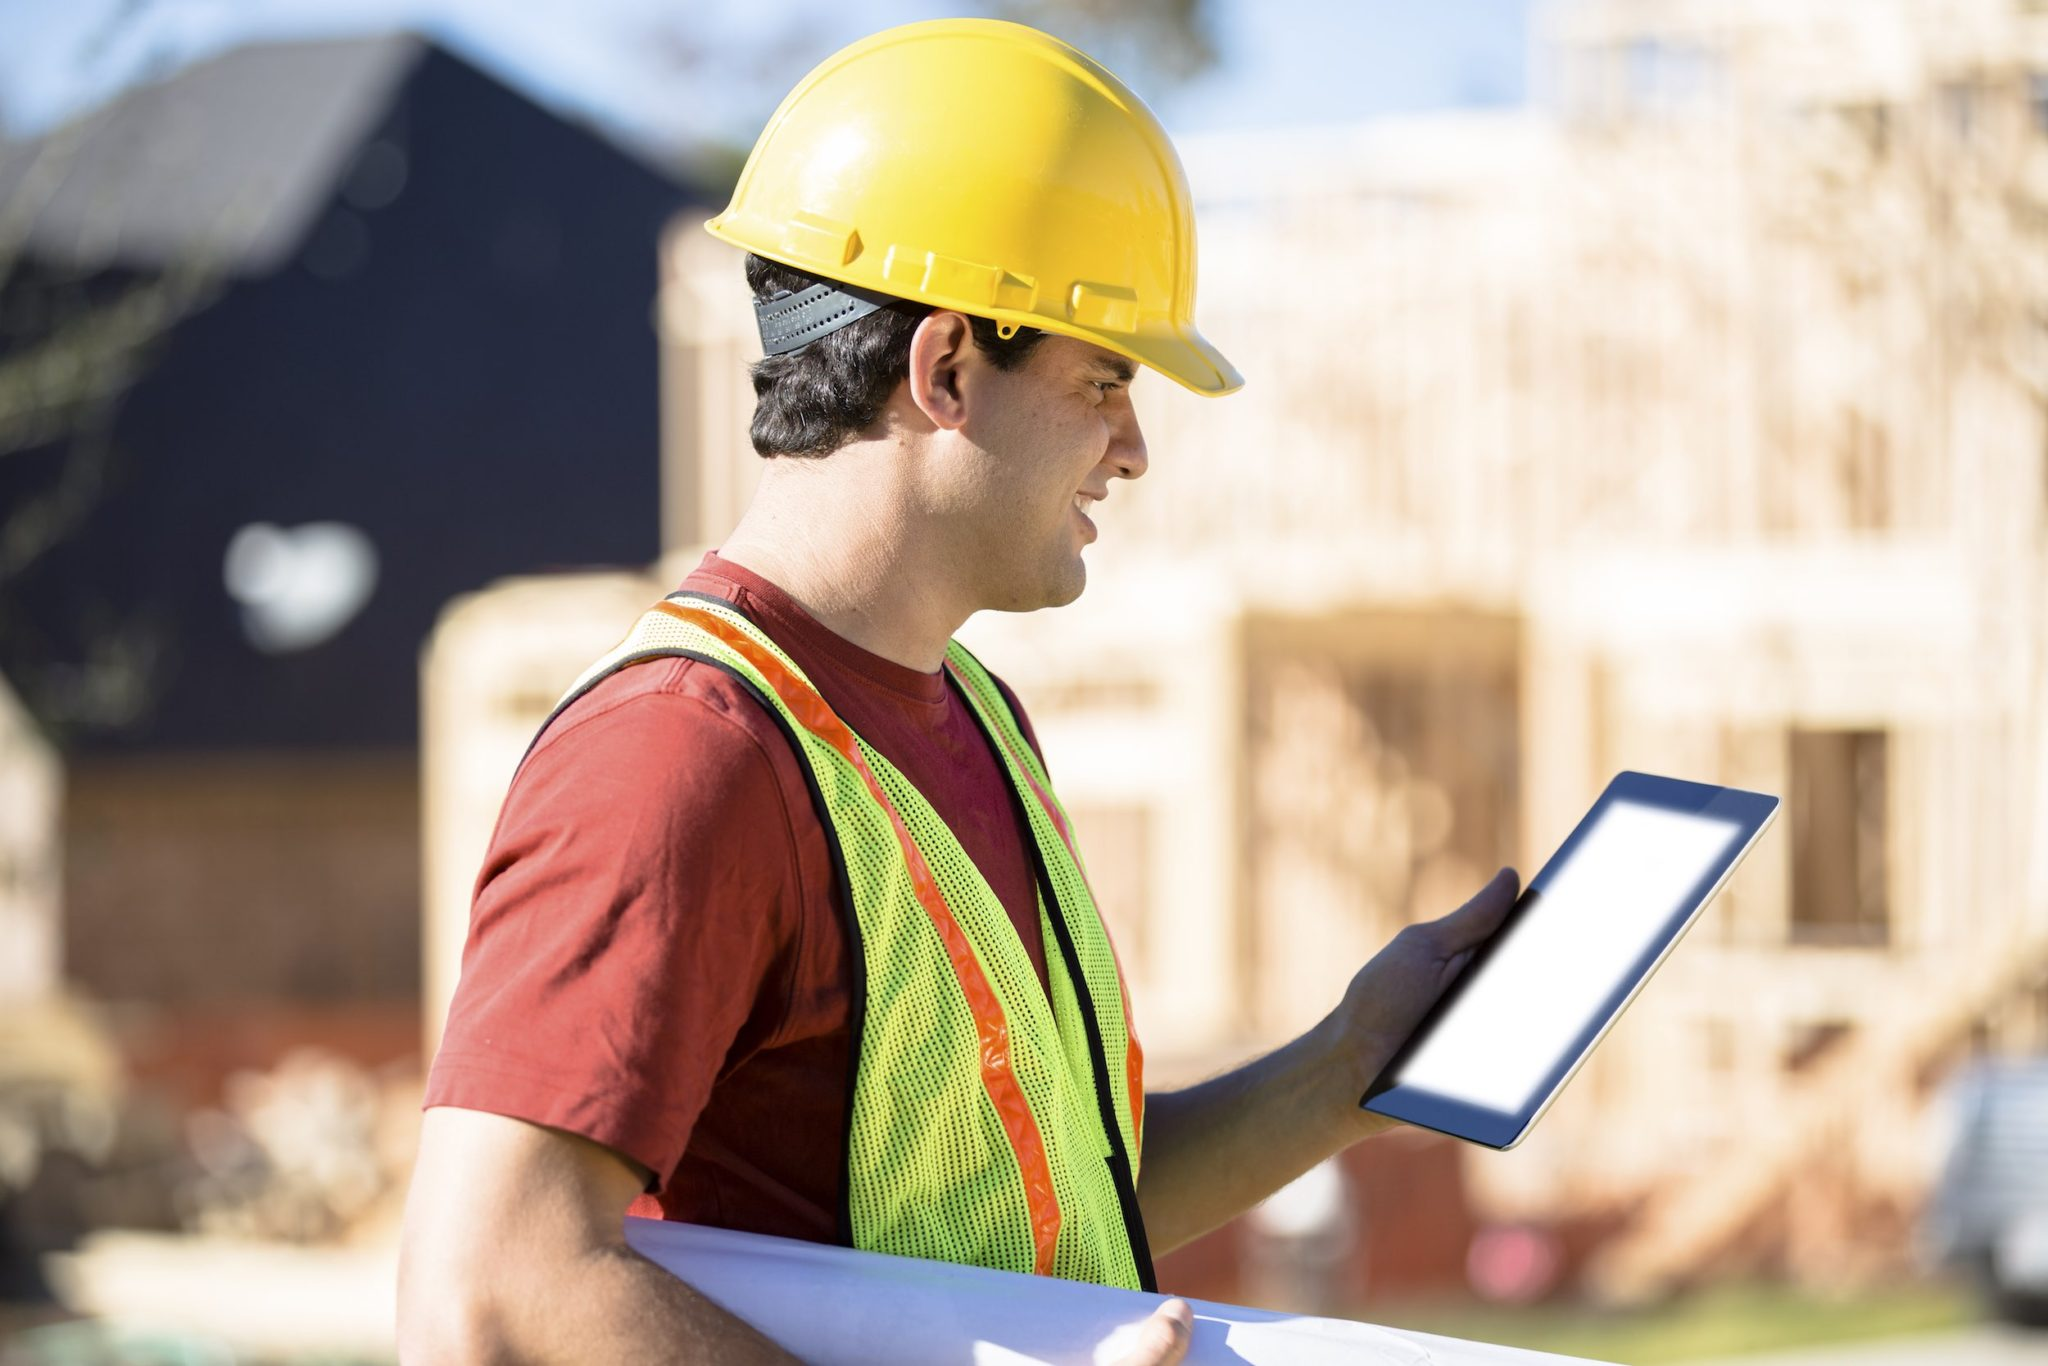 Supervisor on work site consulting project data using a handheld tablet